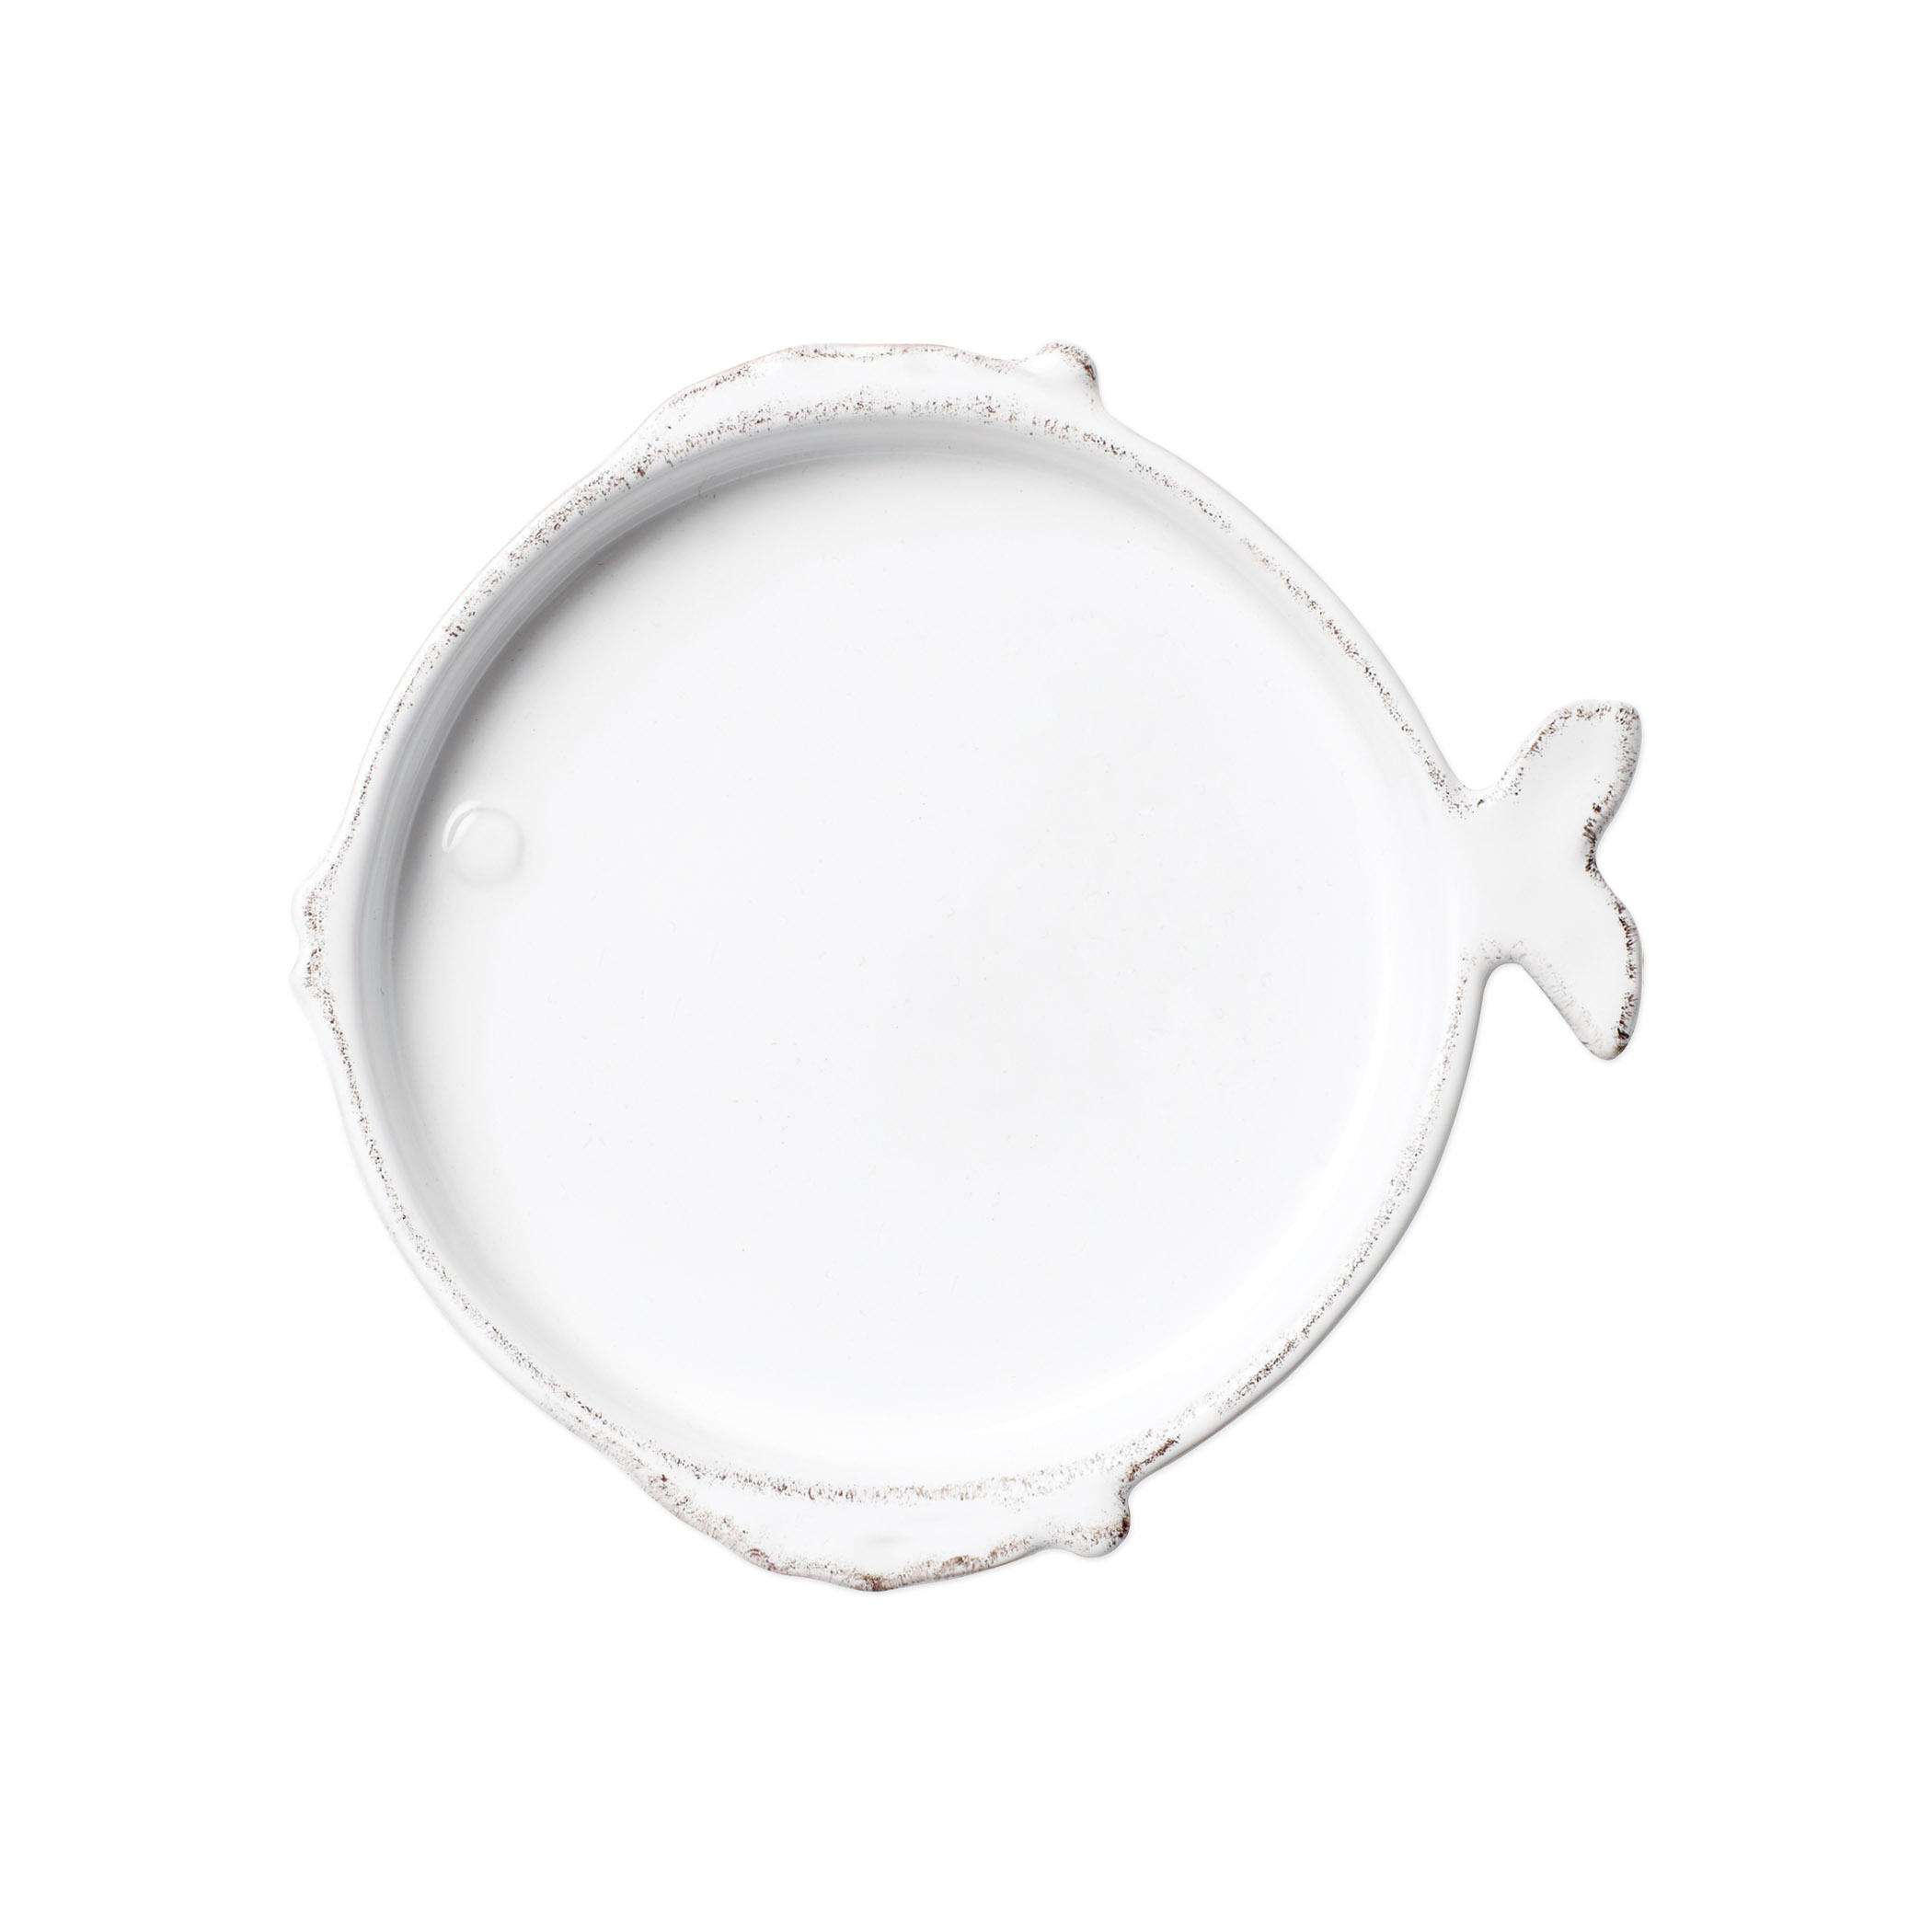 White Melamine Fish-shaped Salad Plate